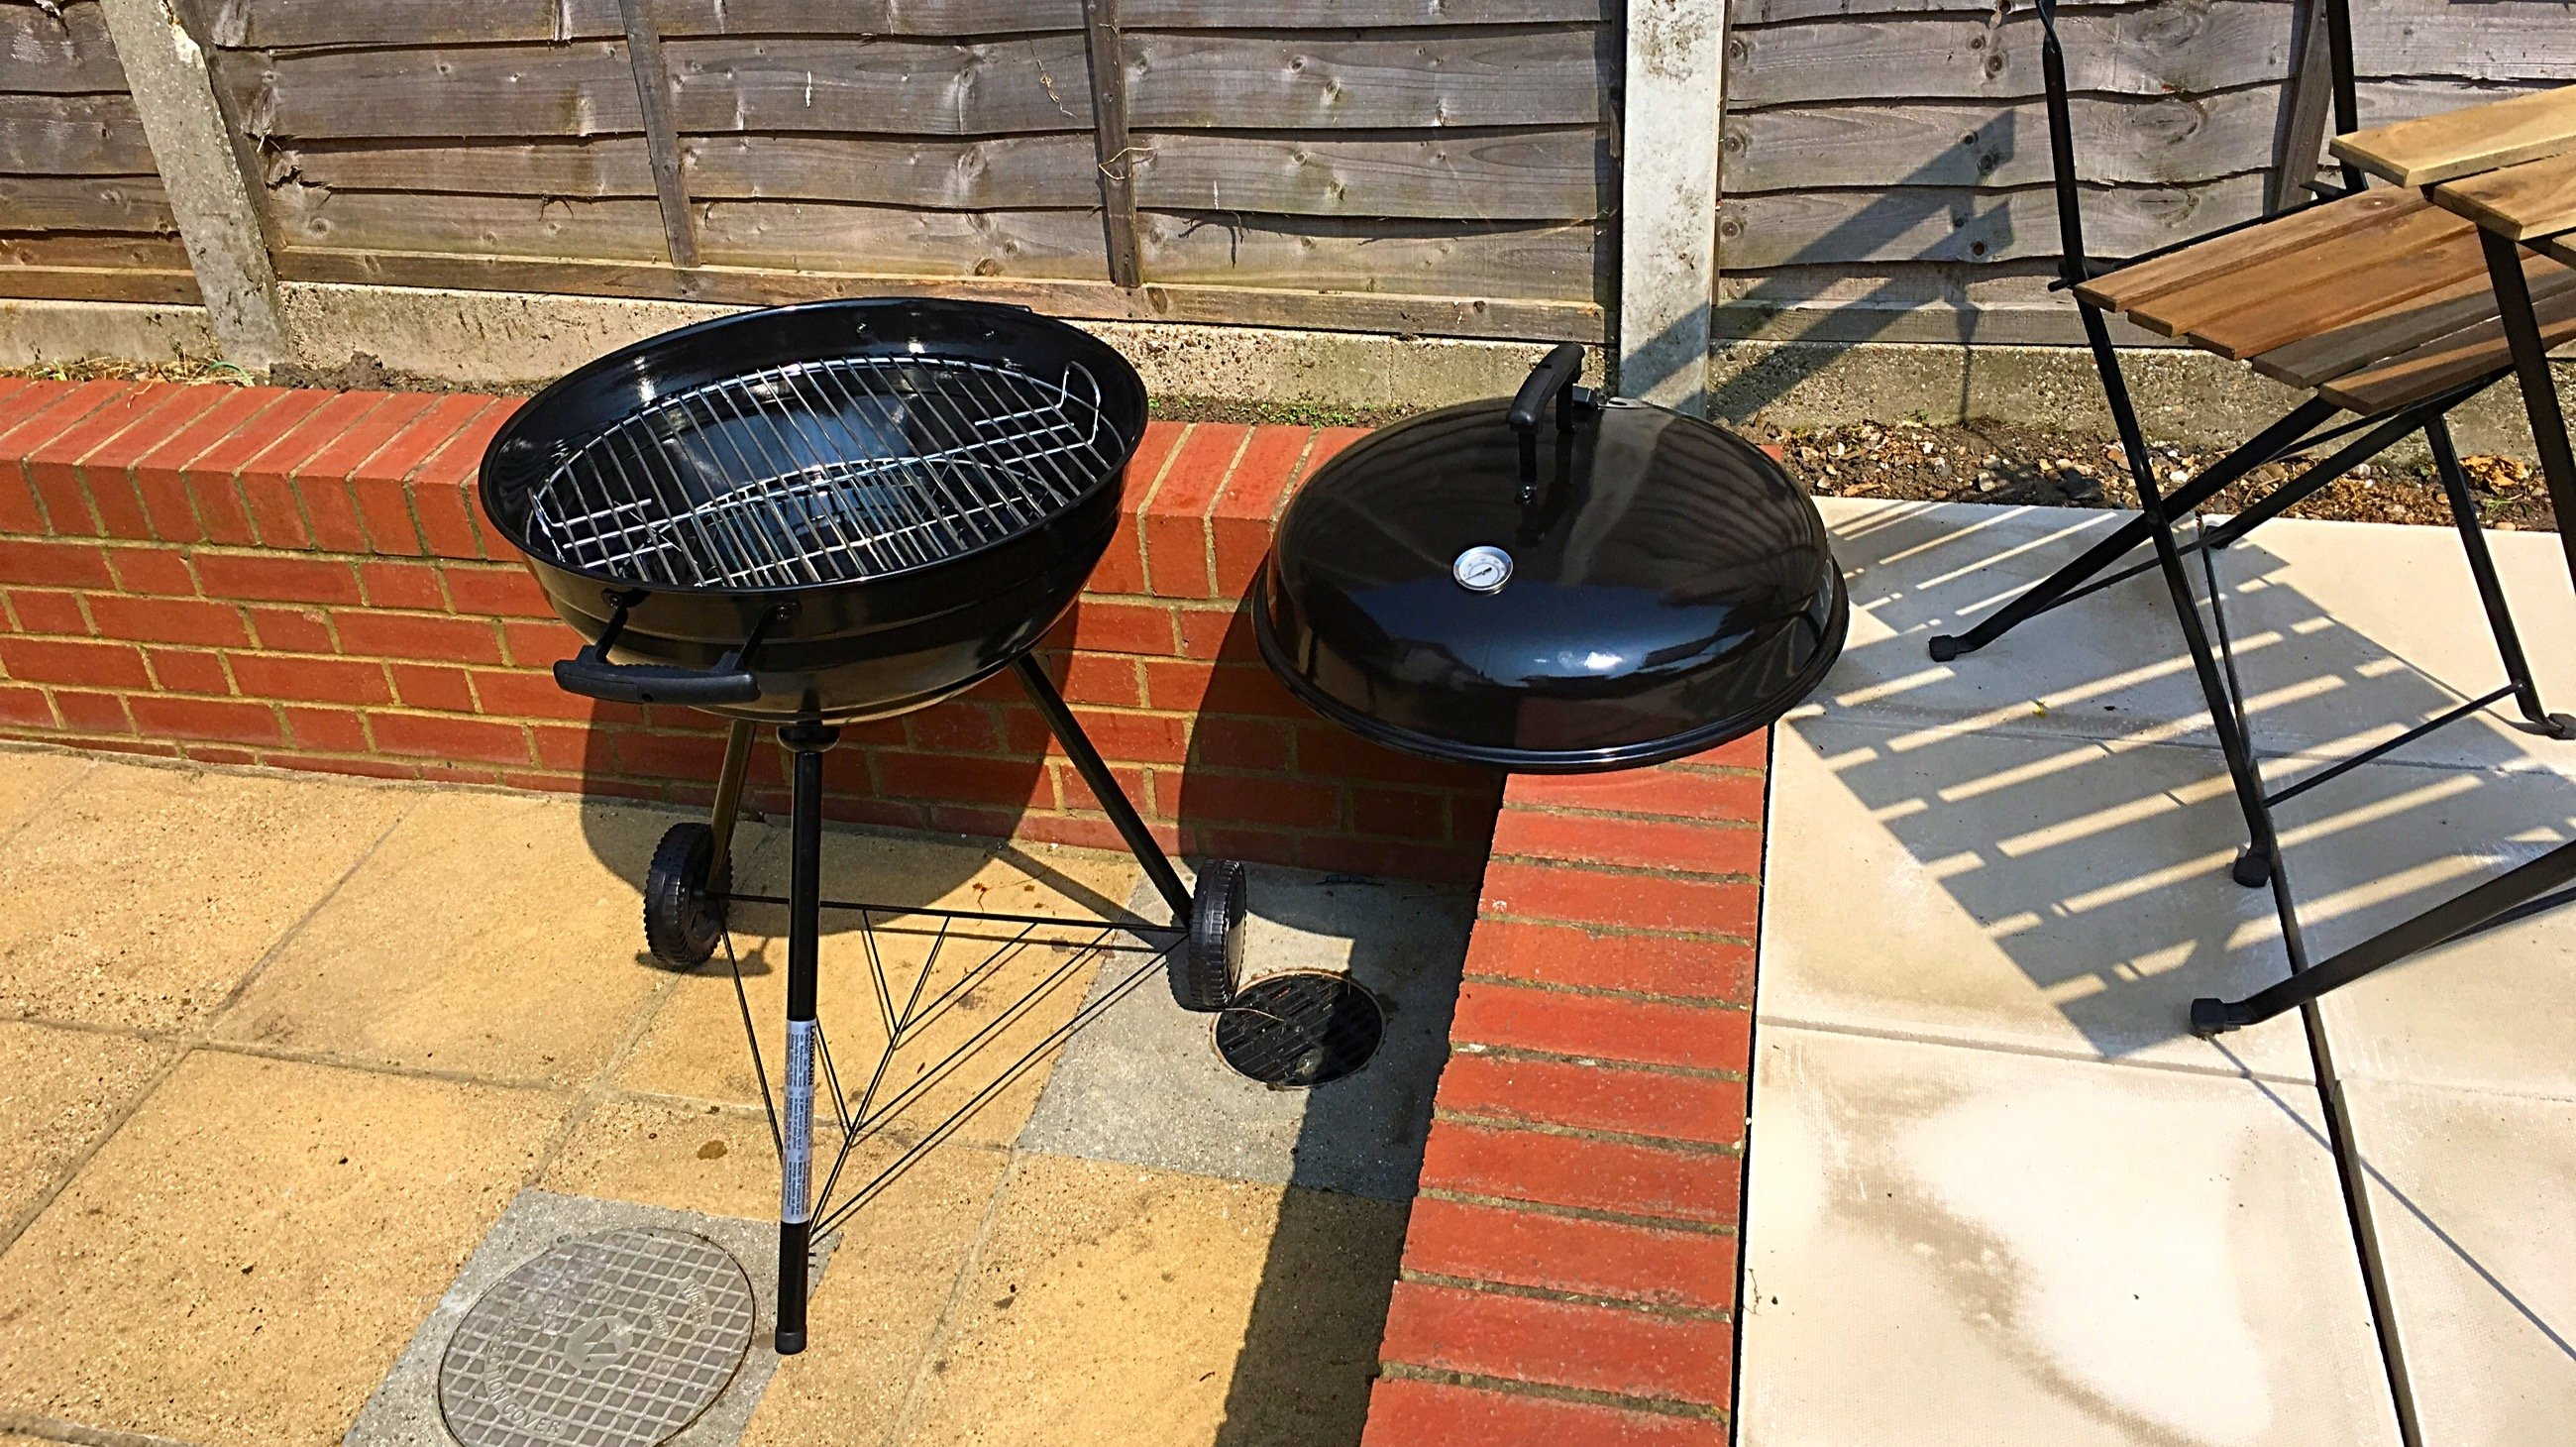 landmann grill chef 31347 57cm premium review - a great bbq for £100